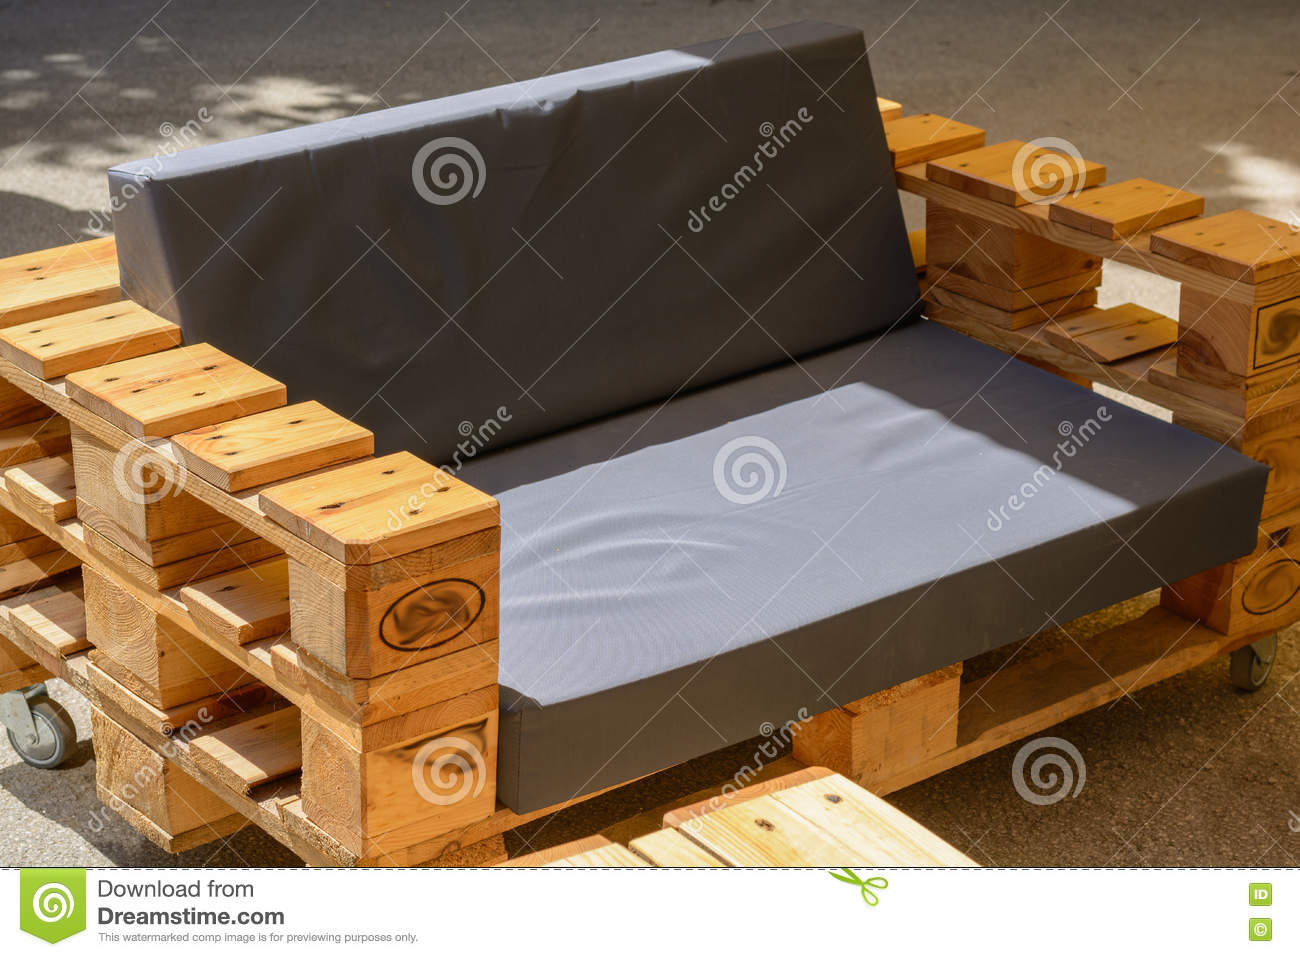 1 687 Pallet Furniture Photos Free Royalty Free Stock Photos From Dreamstime